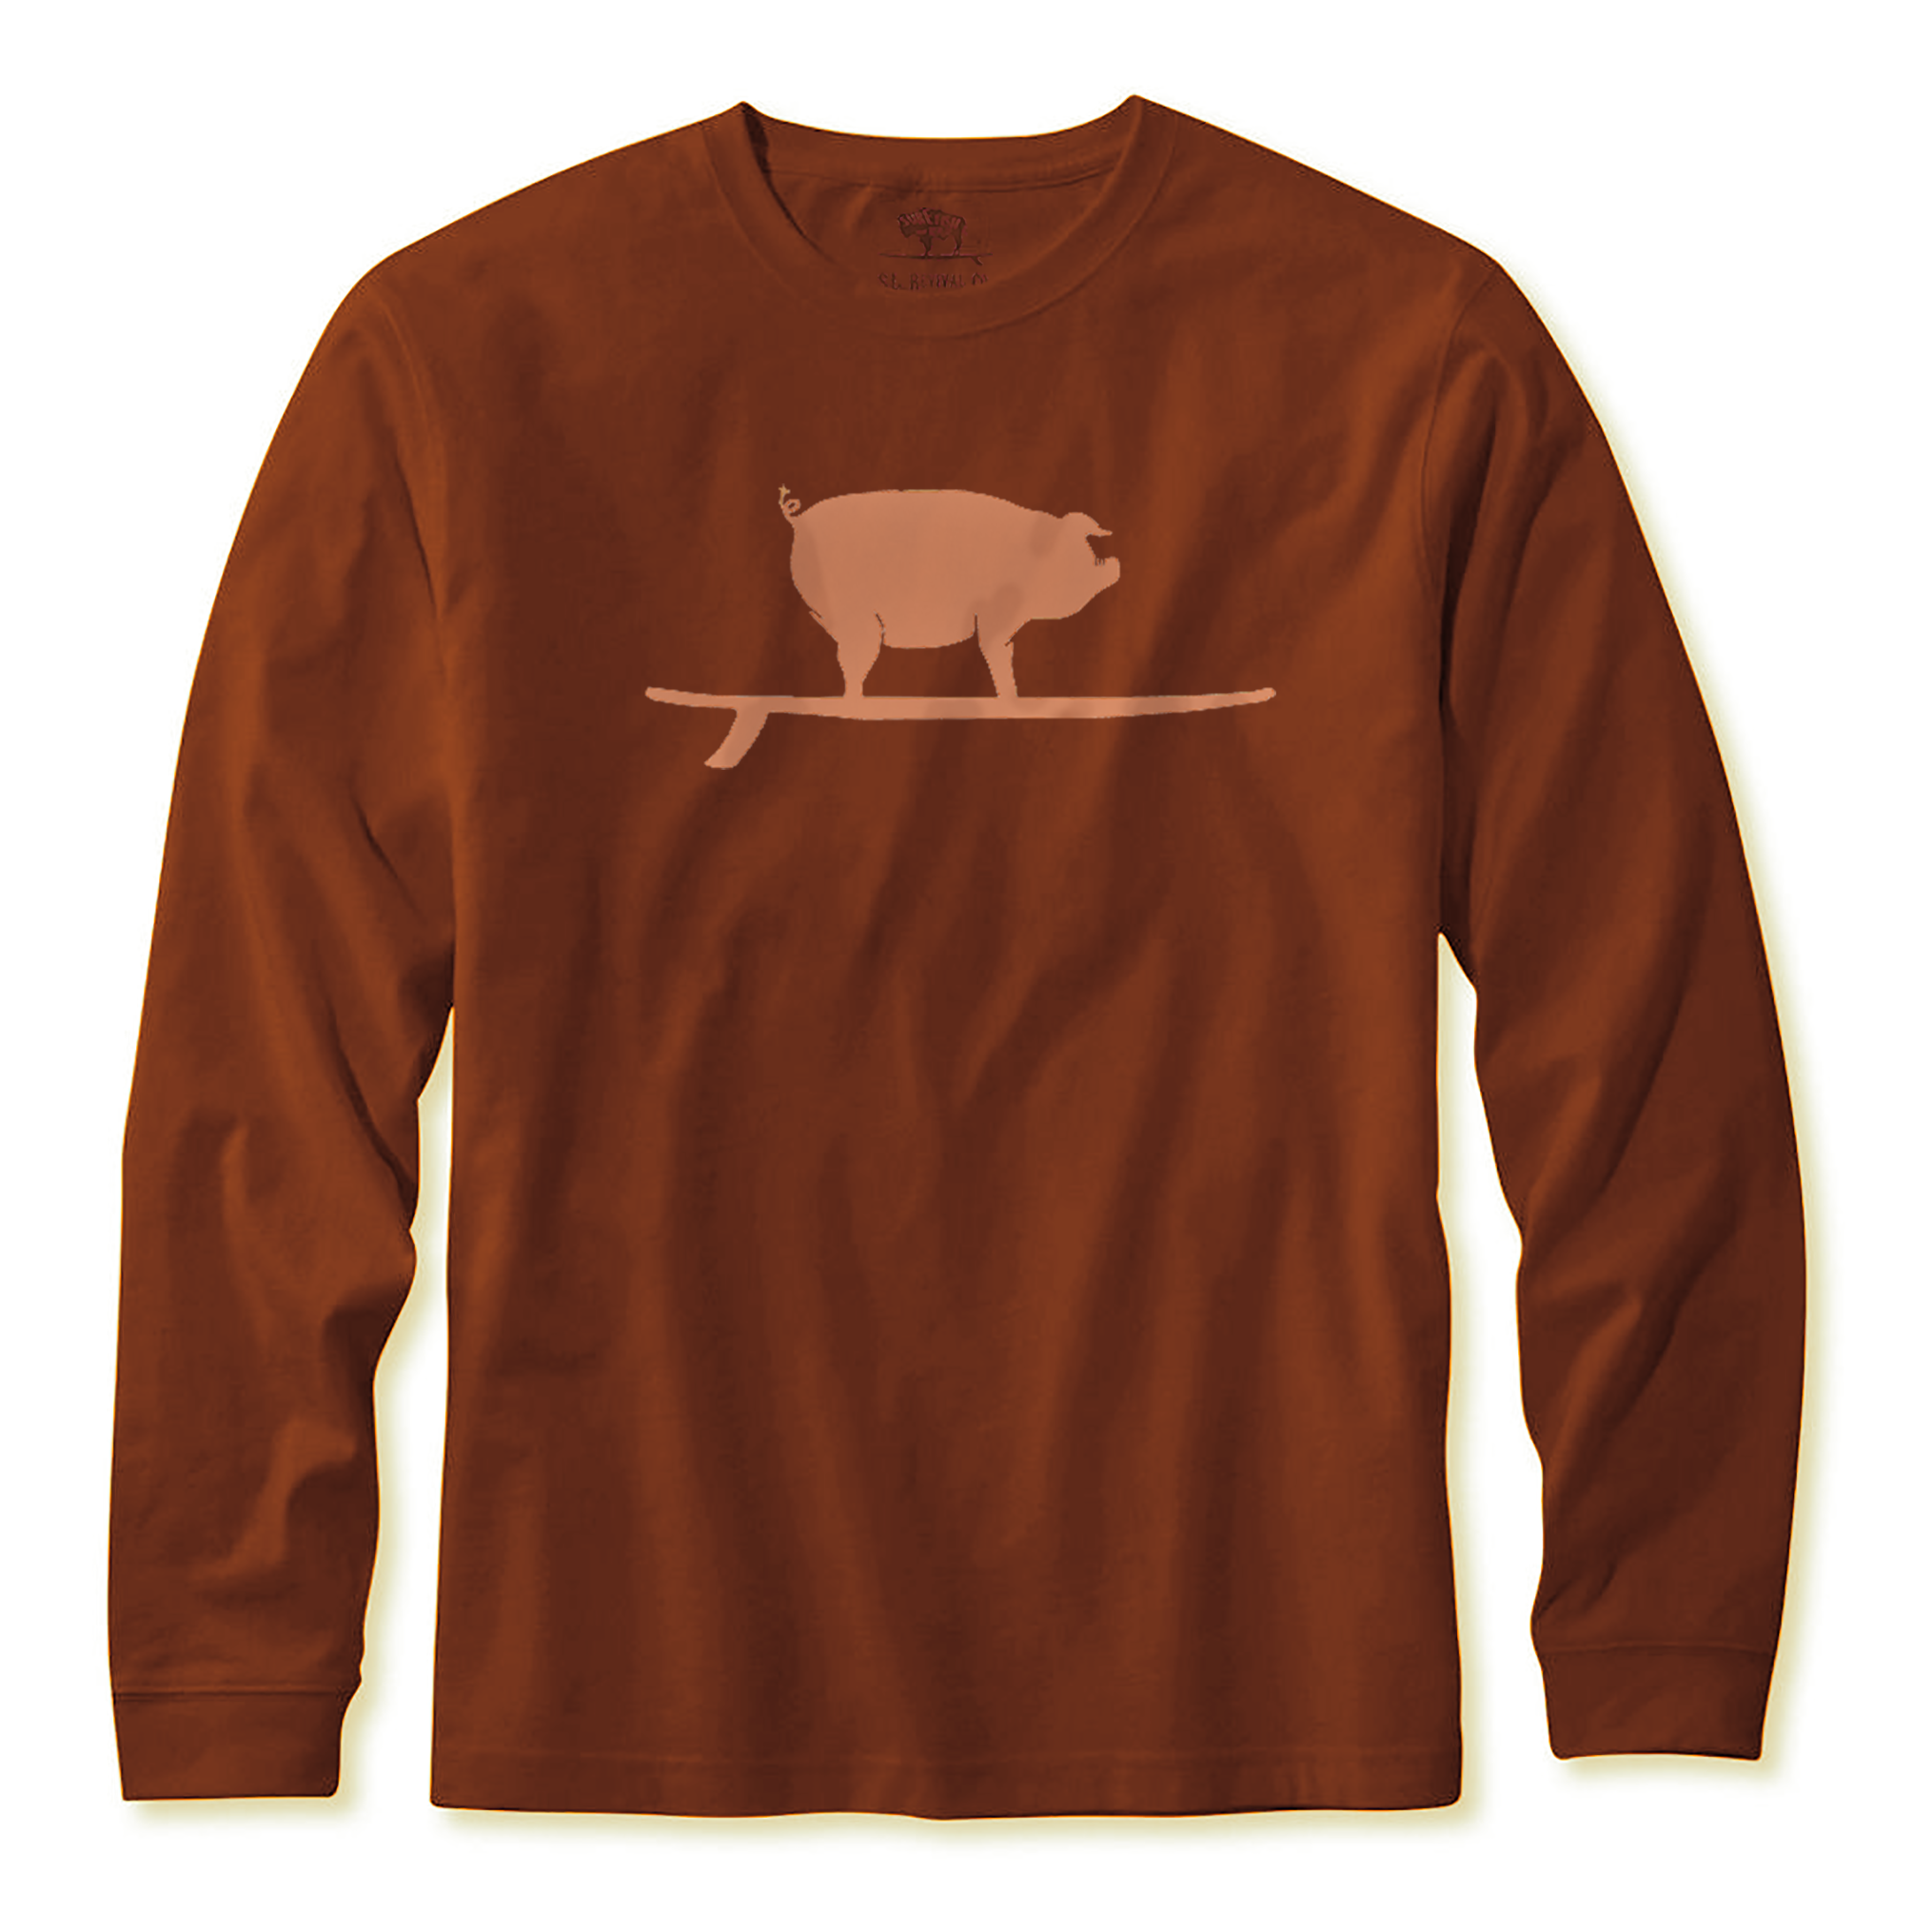 Surfing Pig L/S Tee, Clay-1